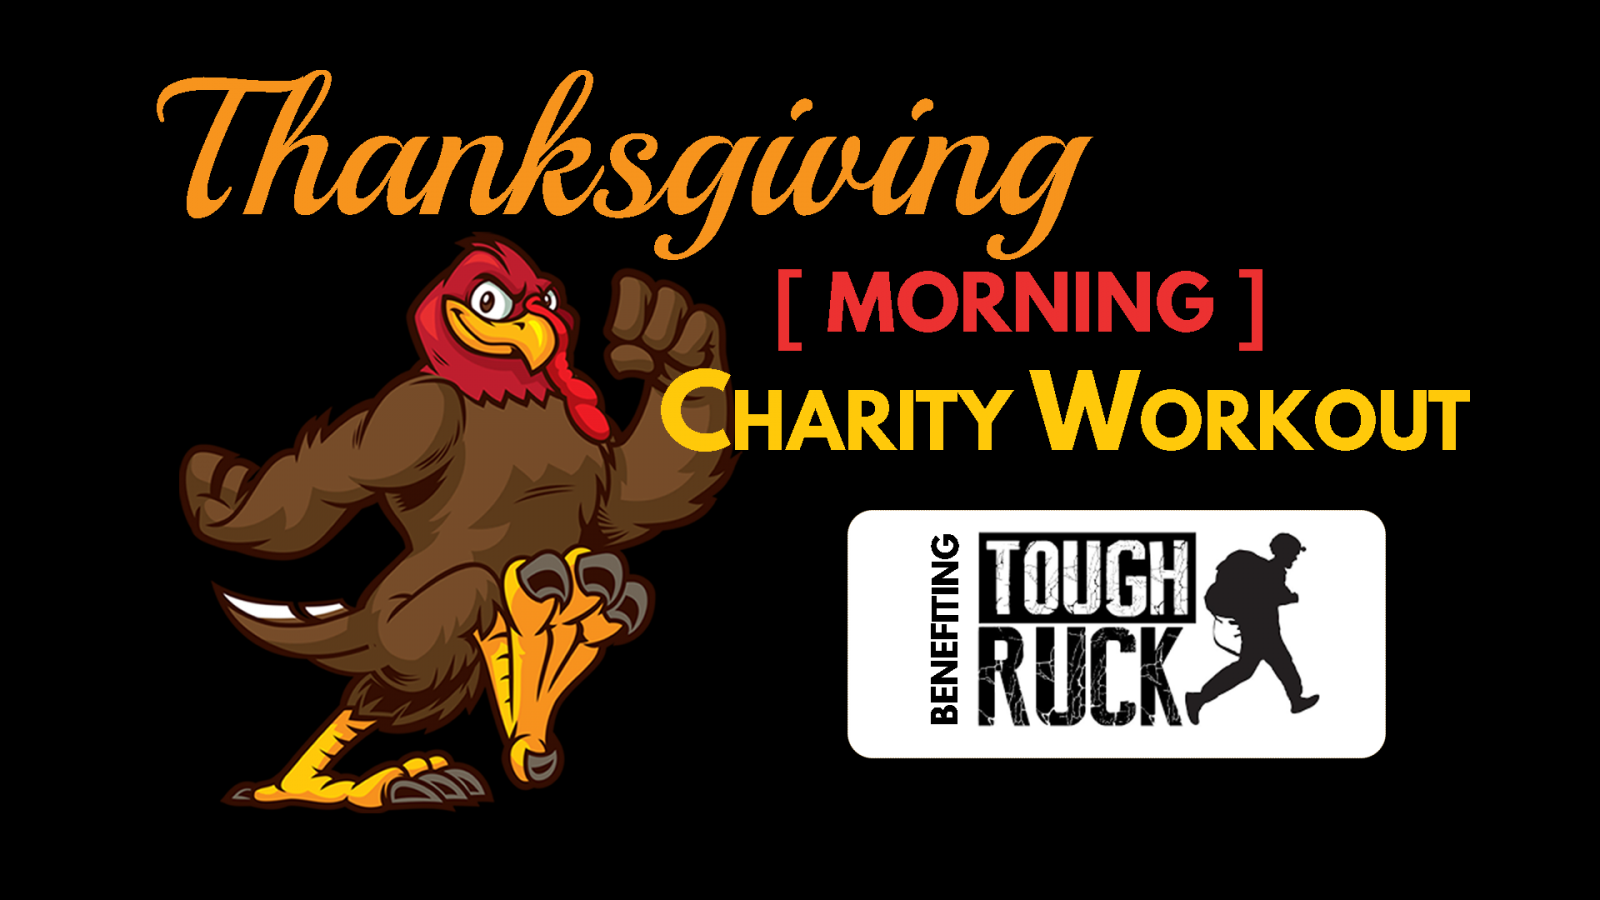 Thanksgiving Morning Charity Workout